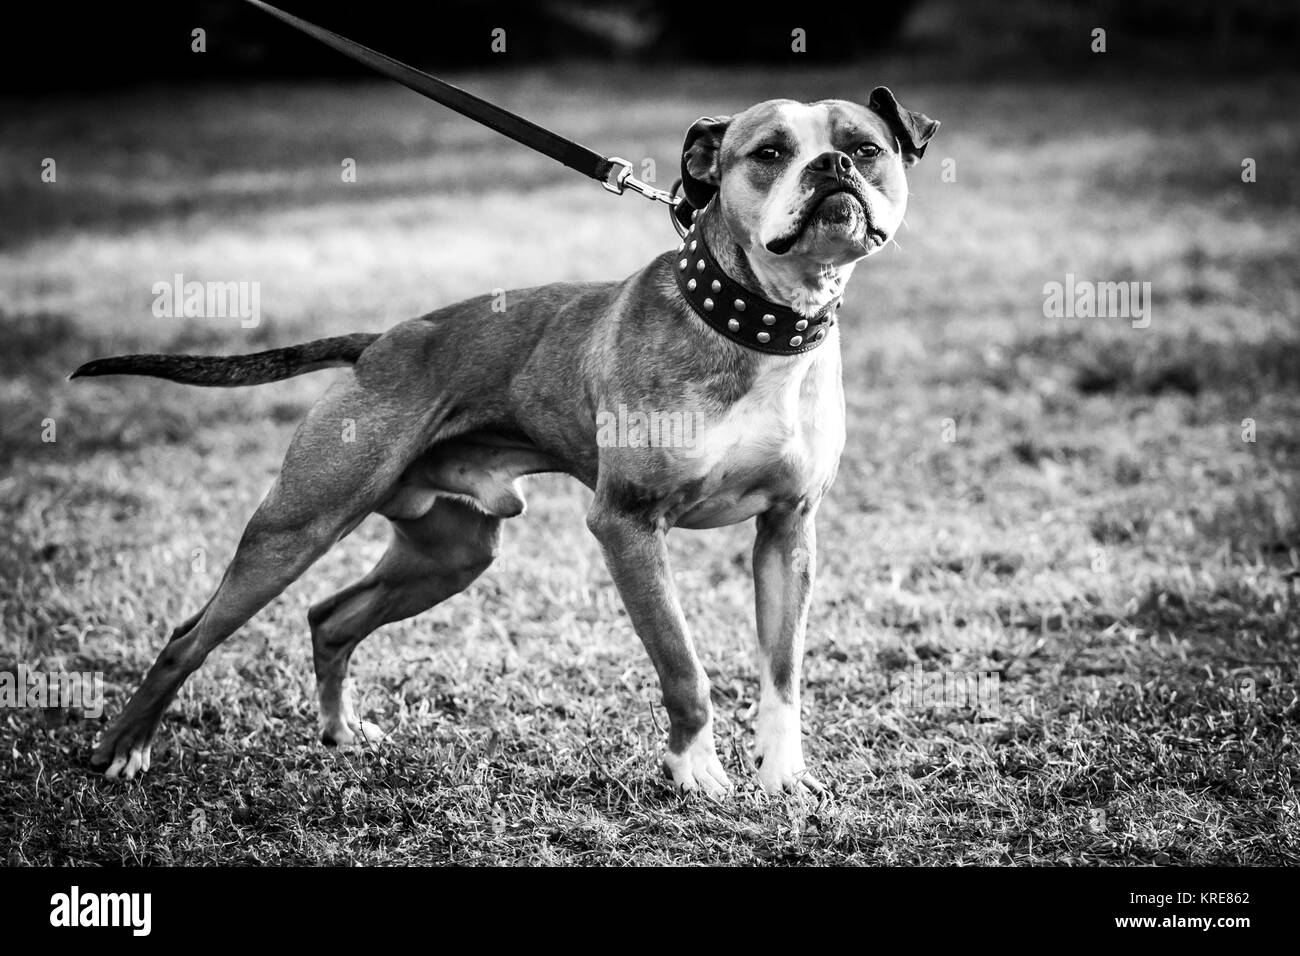 American Pit Bull Terrier with a rivet collar - Stock Image